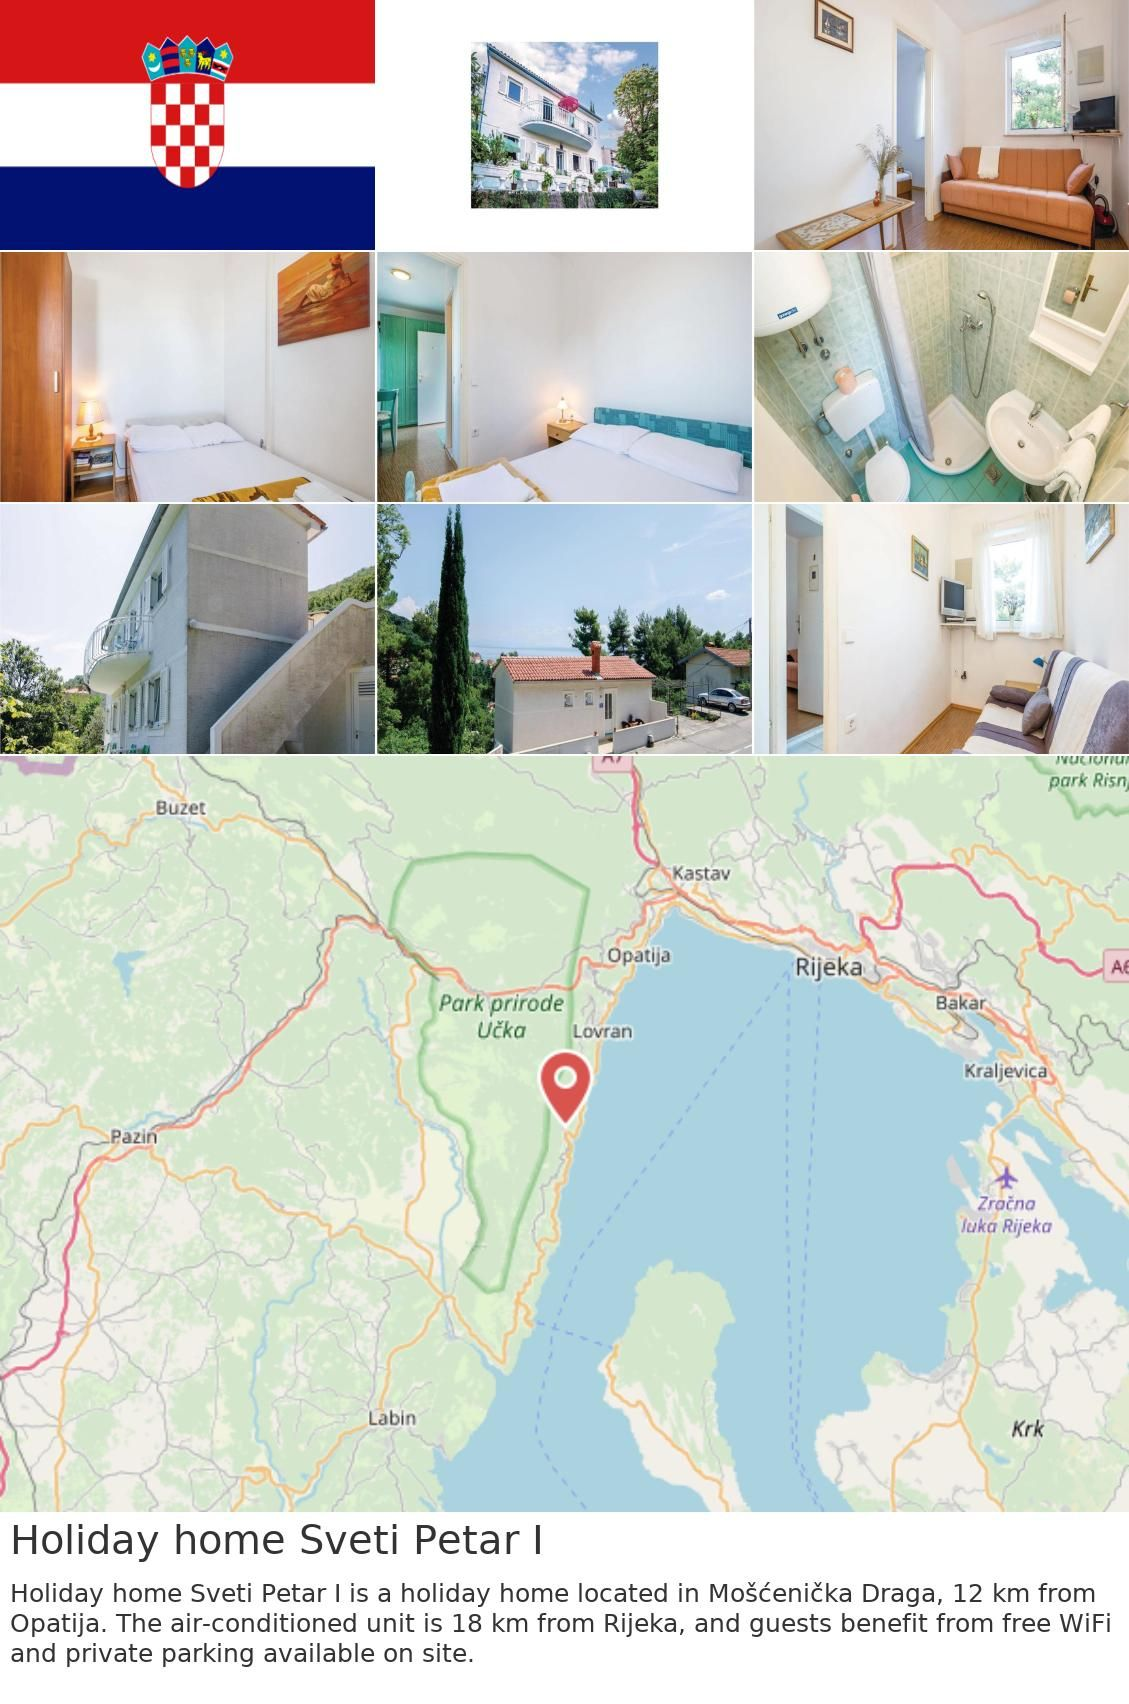 Europe Croatia Moscenicka Draga Holiday Home Sveti Petar I Holiday Home Sveti Petar I Is A Holiday Home Located In Moscenicka Draga 12 Km From Opatija The